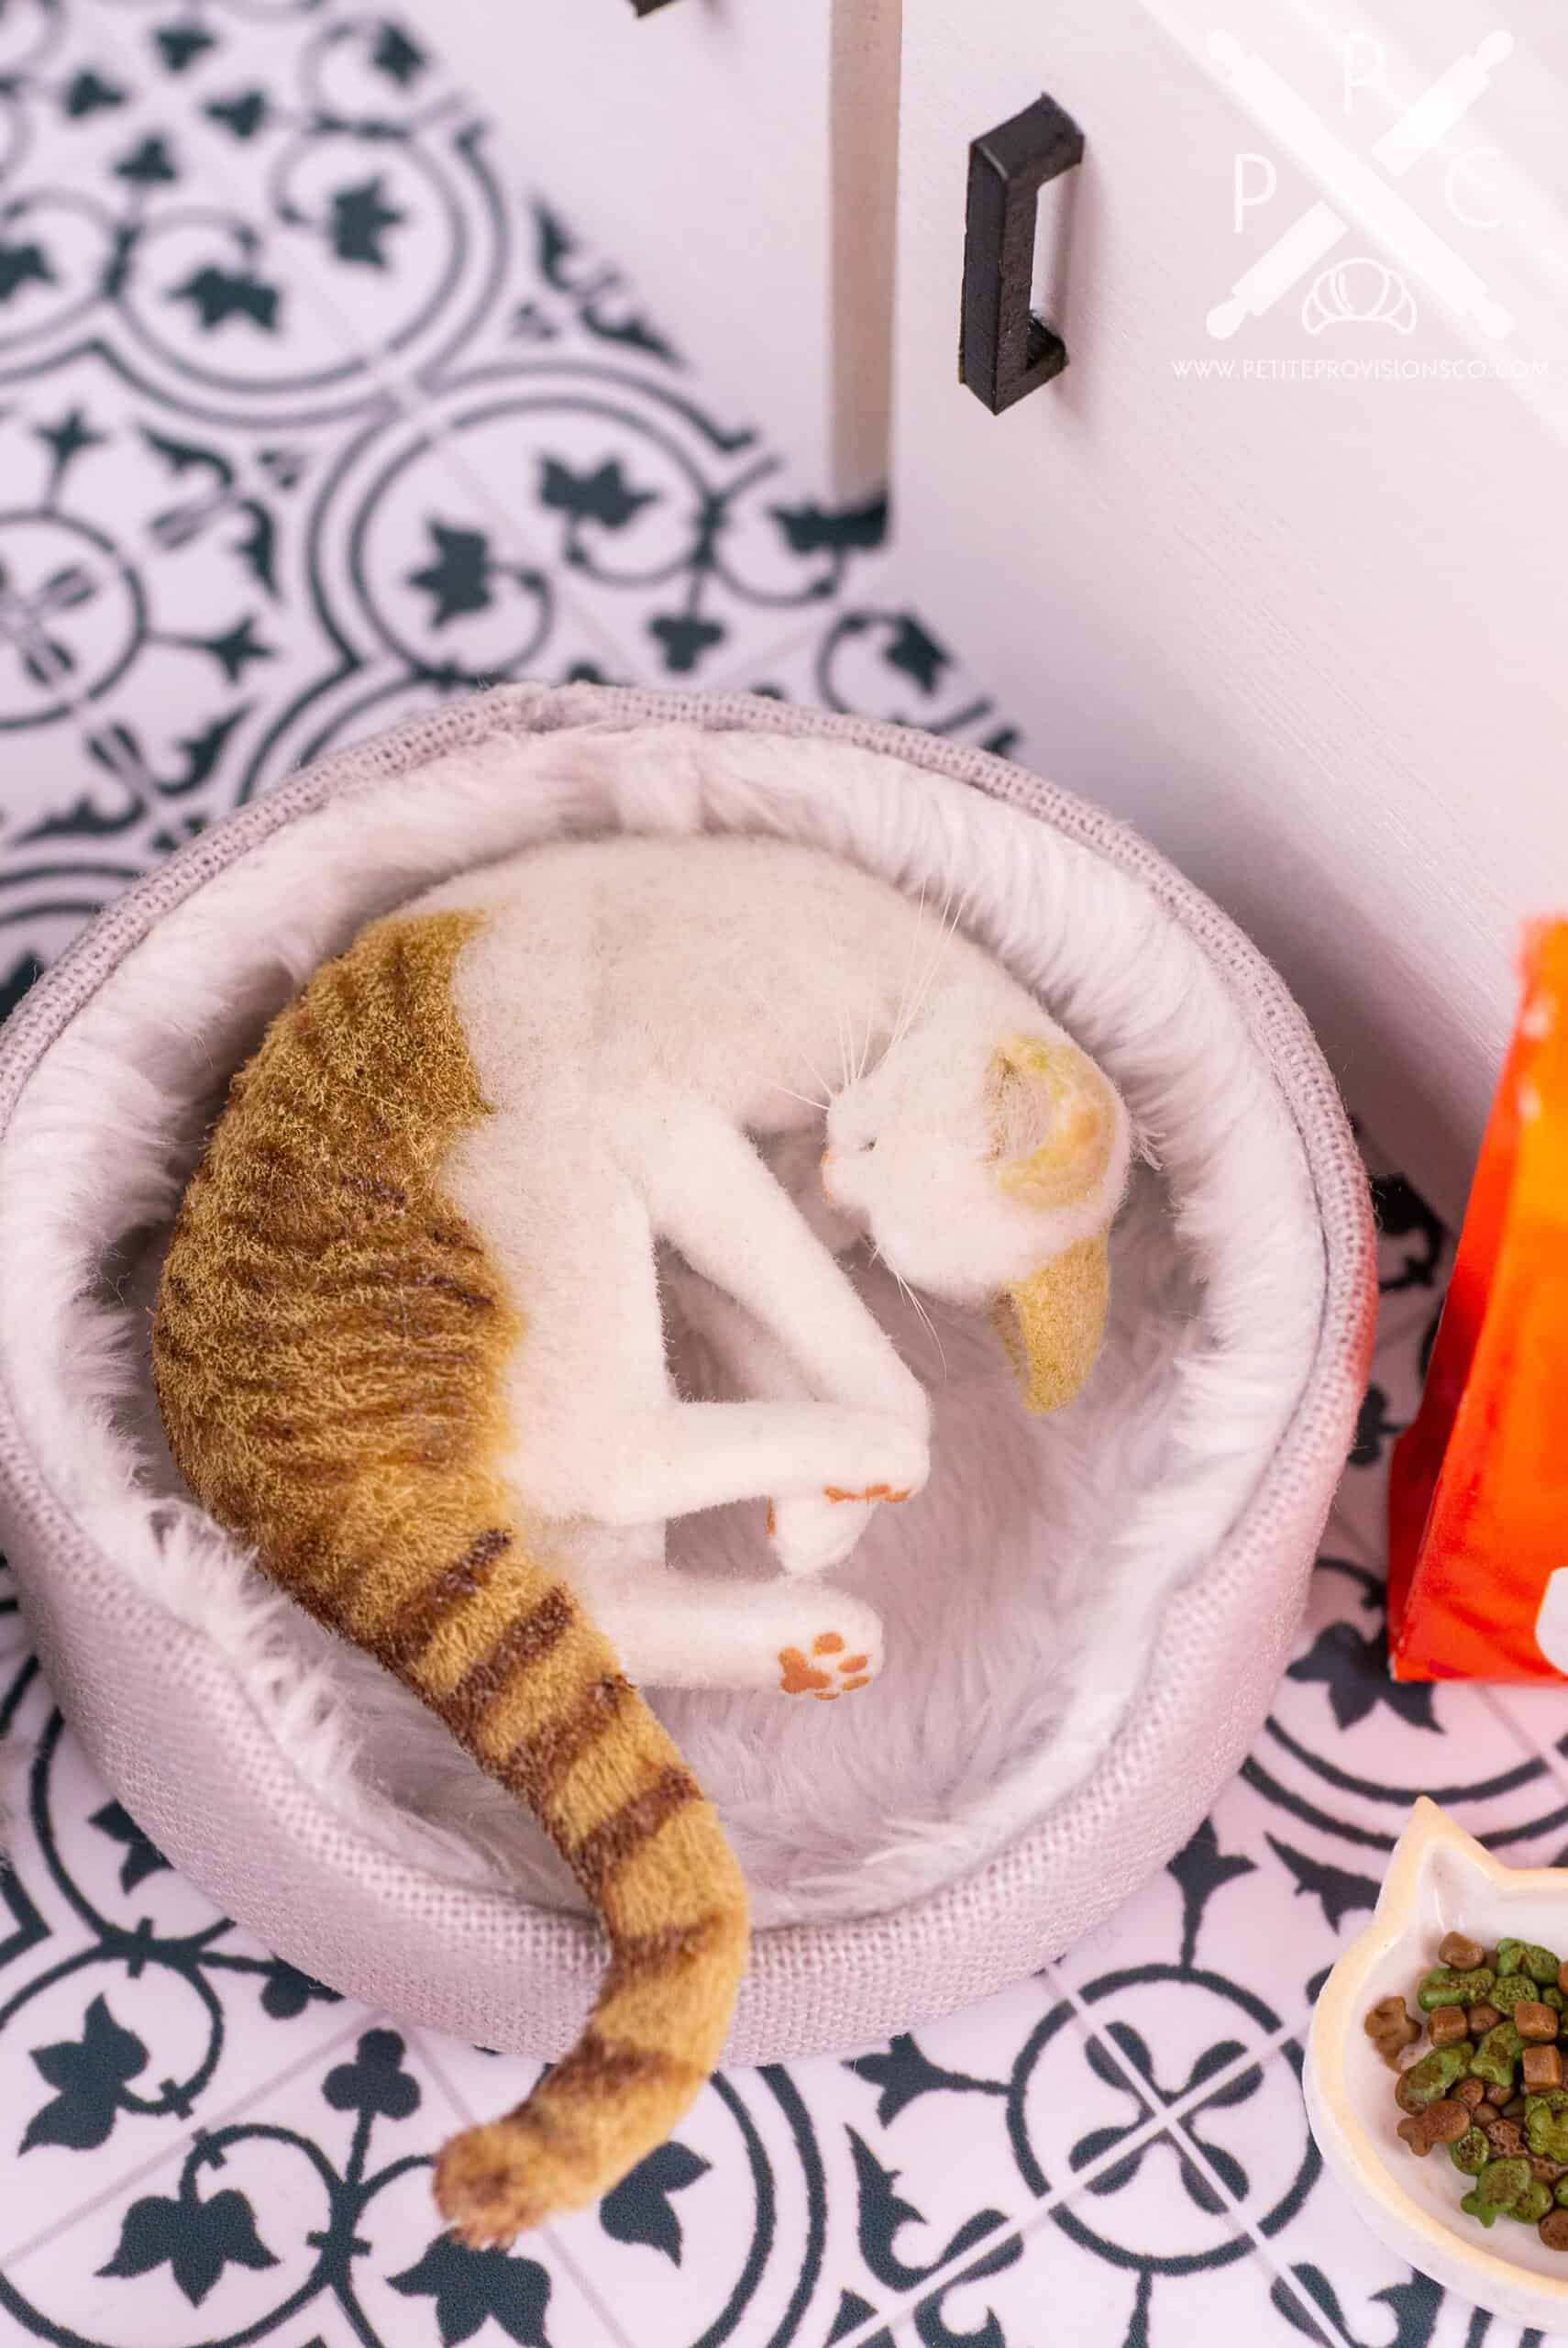 Dollhouse miniature cat sleeping in a handmade pet bed in a one inch scale scene by Erika Pitera, The Petite Provisions Co.